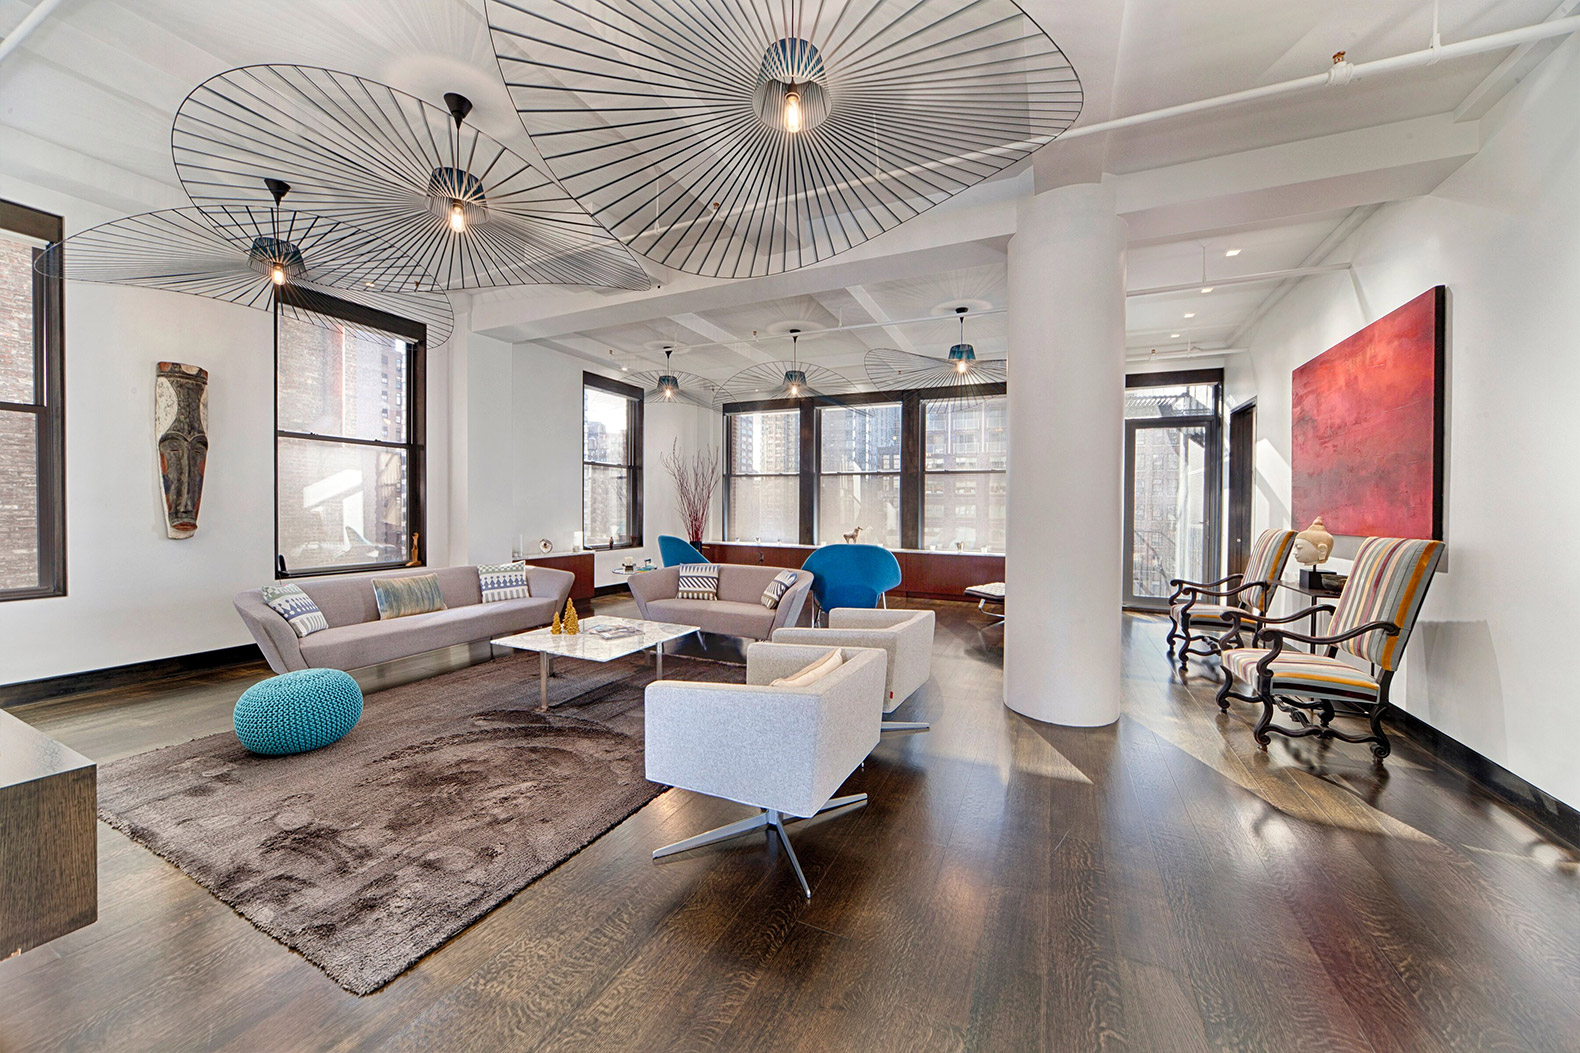 Marvelous 9 Canu0027t Miss Archtober Events To Check Out This October In NYC DWELL  Manhattan Home Tour Living Room U2013 Inhabitat   Green Design, Innovation,  Architecture, ...